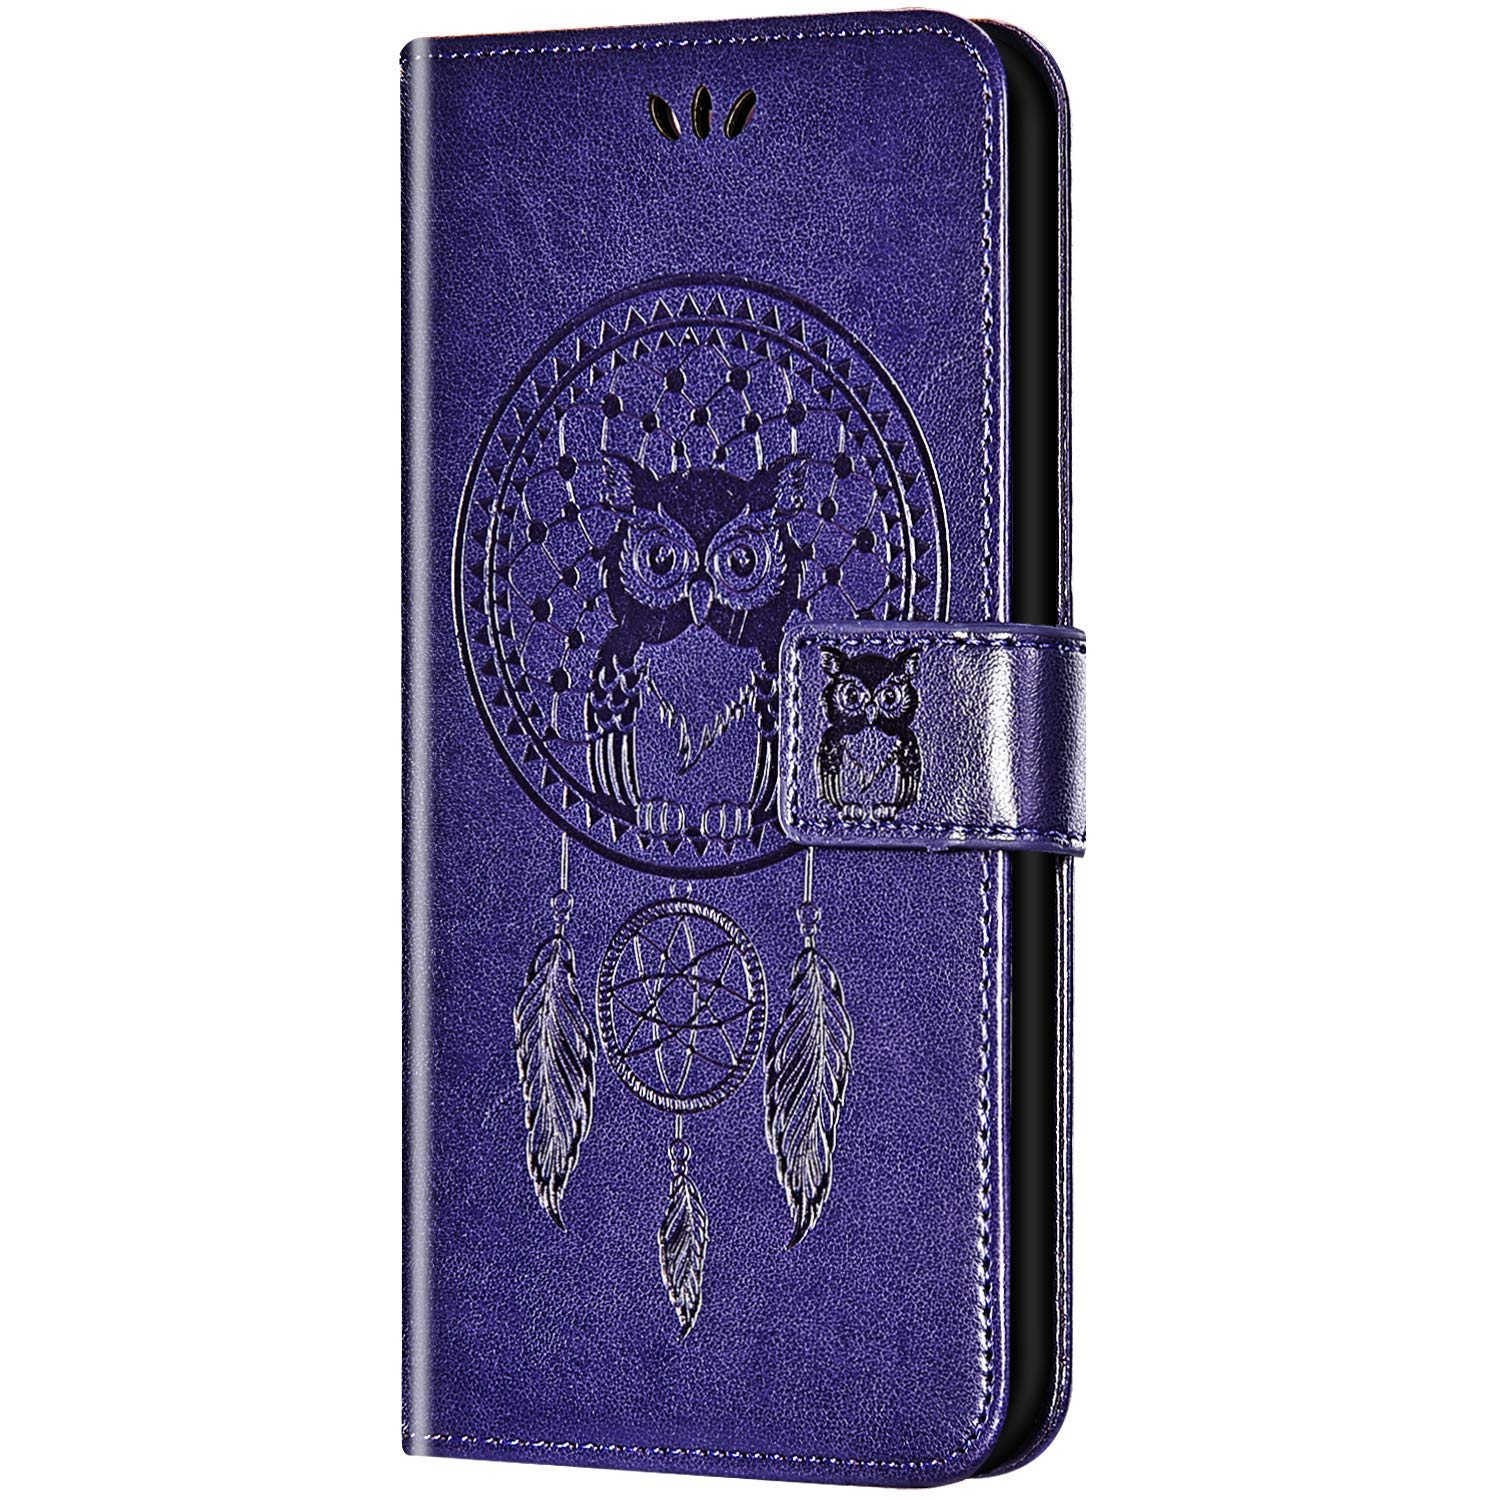 Case for Galaxy S10 Plus Flip Case Ultra Slim PU Leather Wallet with Card Holder/Slot and Magnetic Closure Shockproof Cartoon Animal Owl Embossed Protective Cover for Galaxy S10 Plus,Purple by ikasus